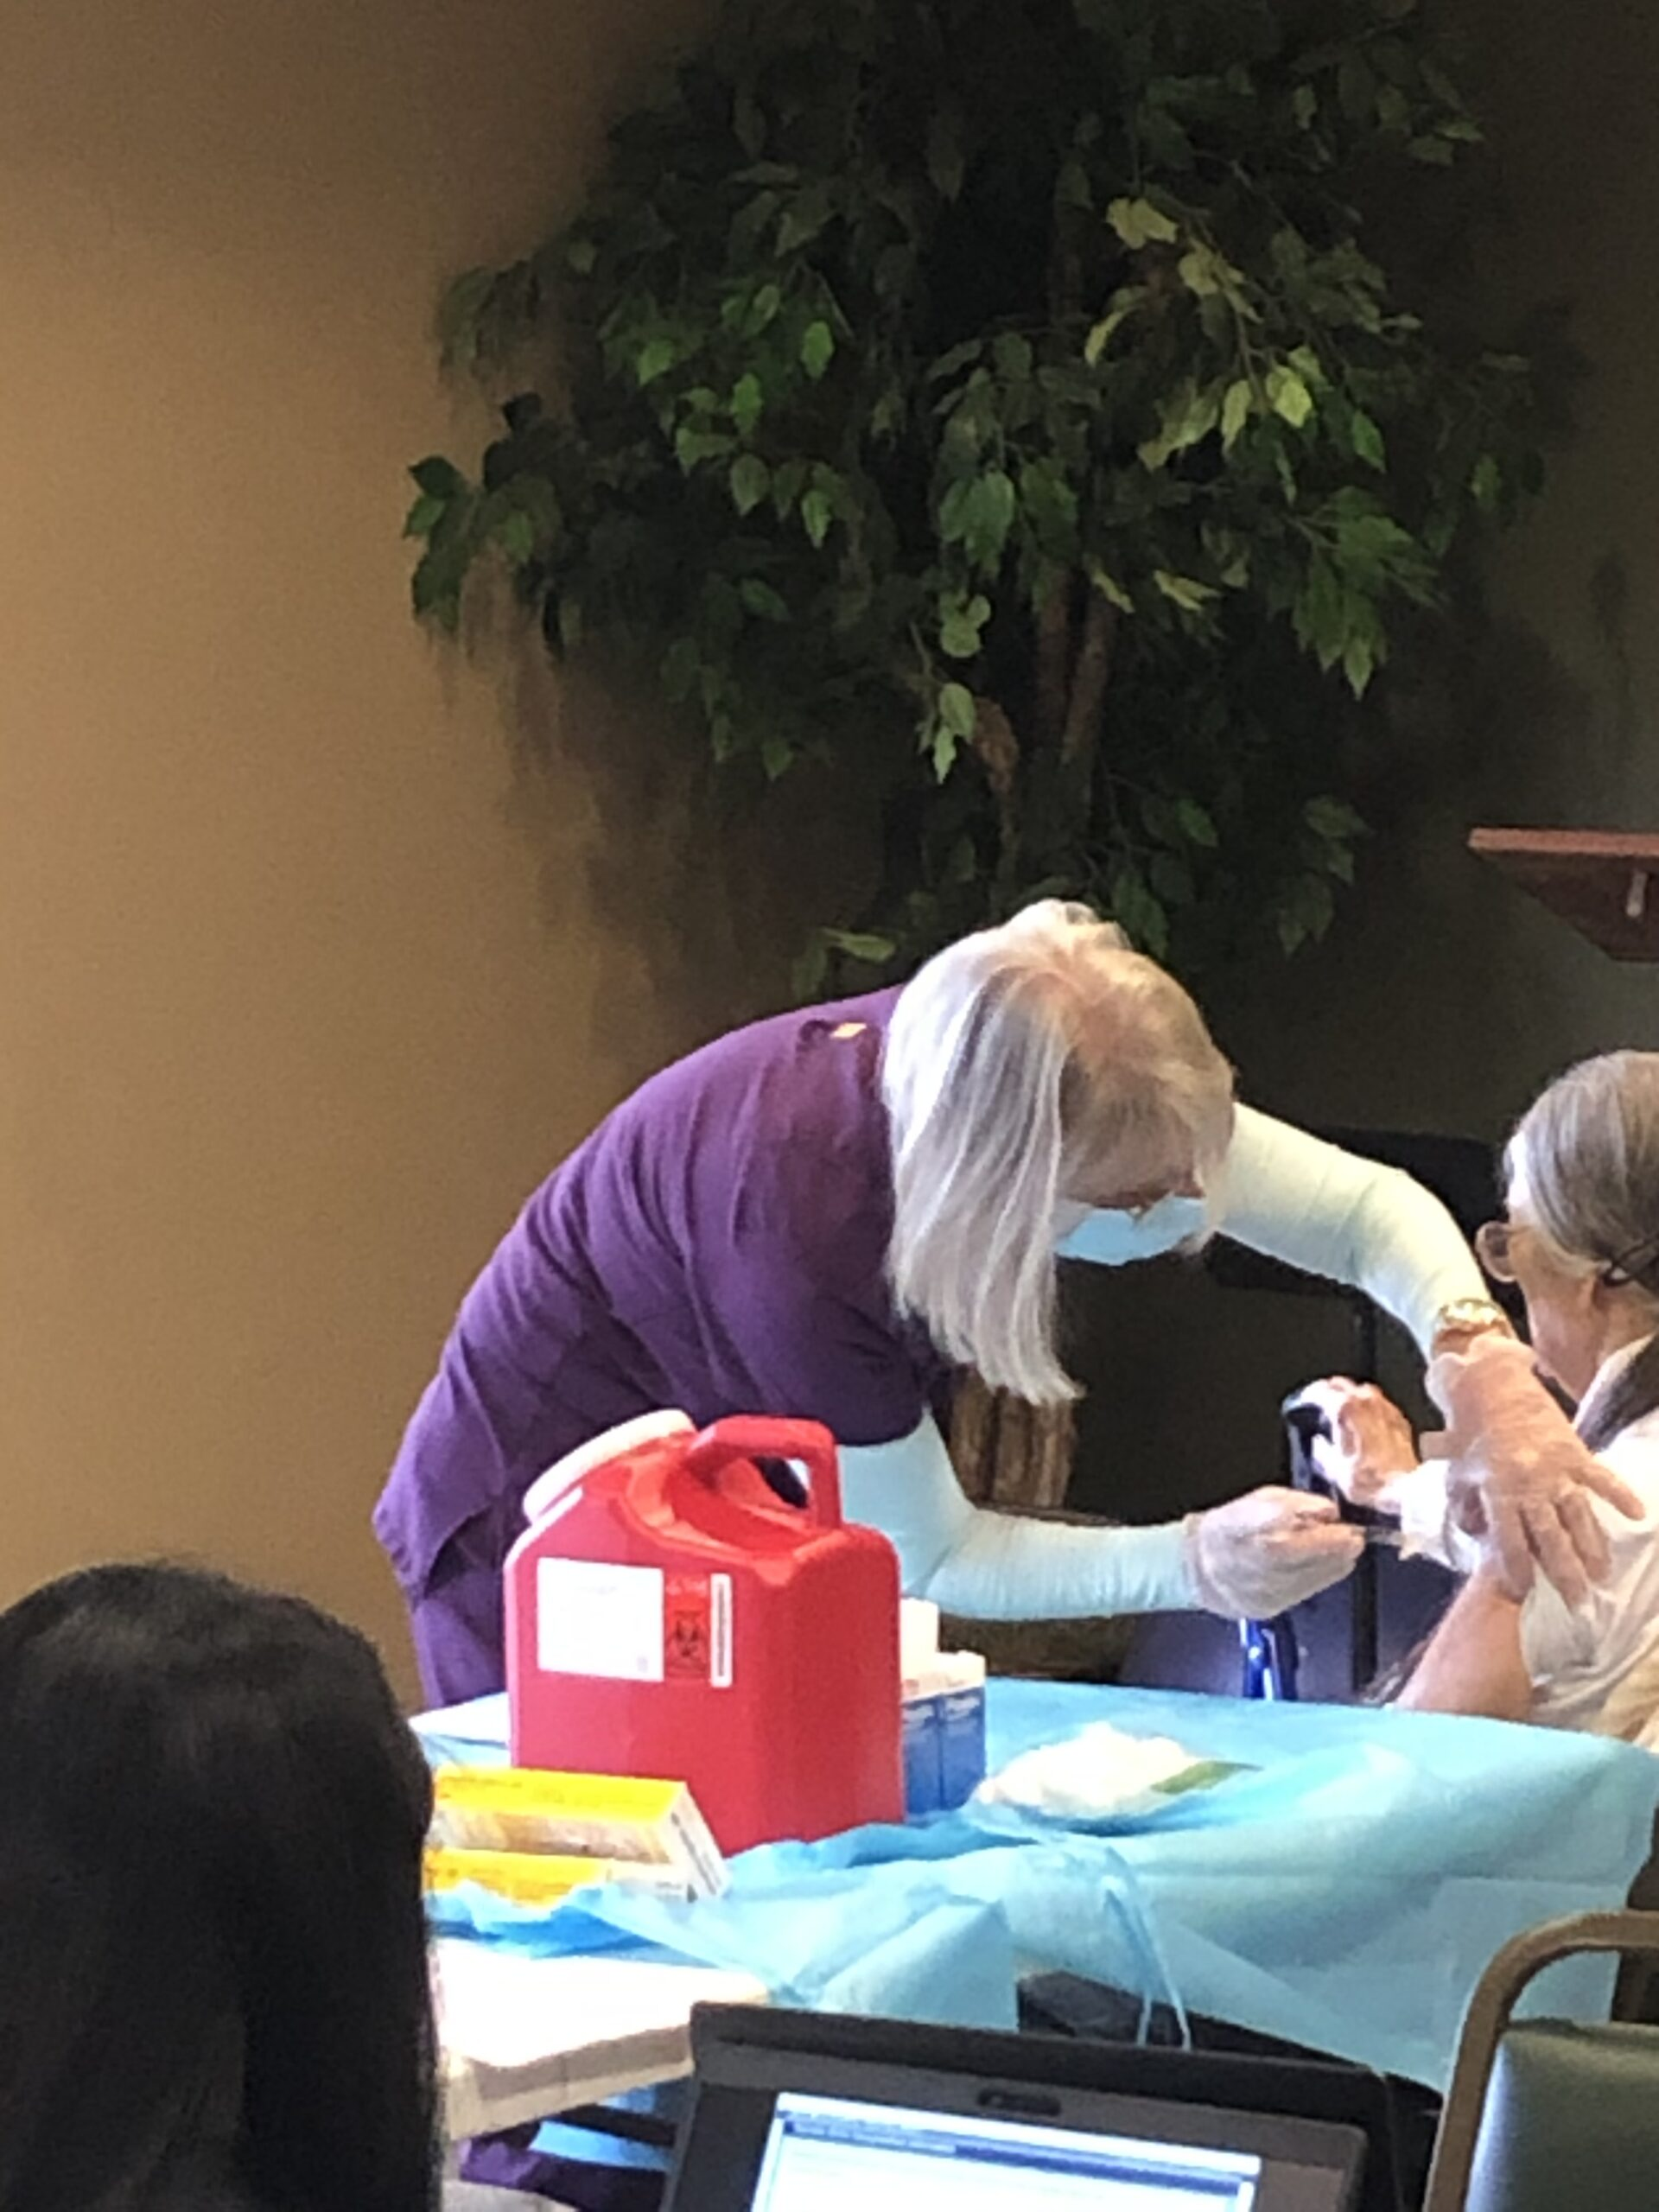 Janette getting her vaccine shot